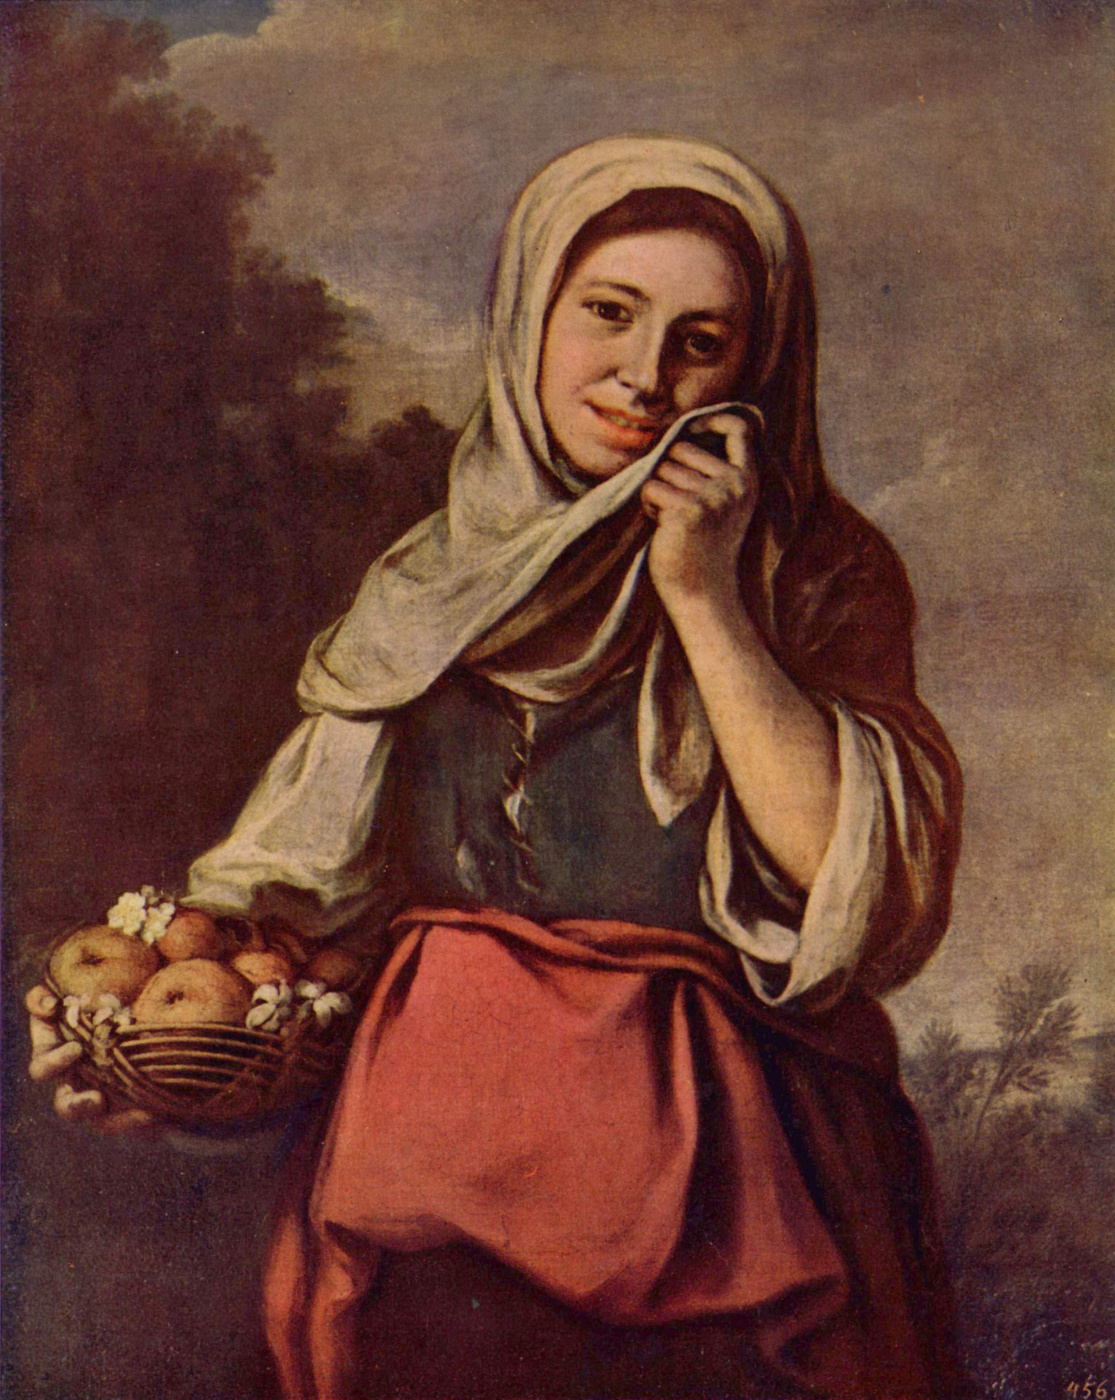 Bartolomé Esteban Murillo. Girl with fruit and flowers